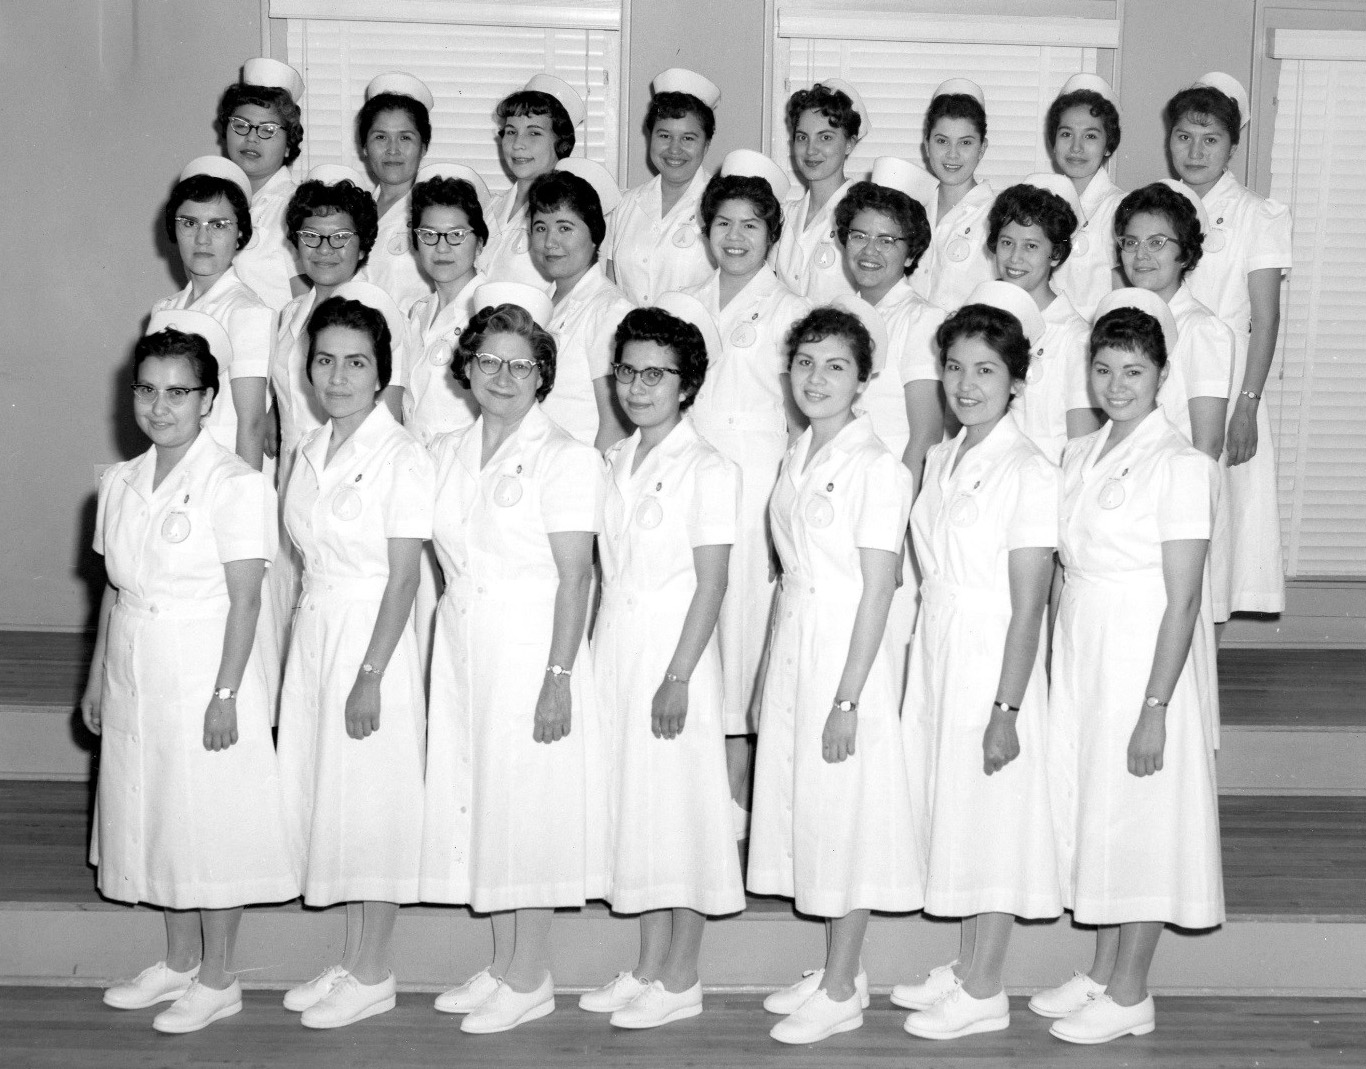 35th graduating class of the Indian School of Practical Nursing, Albuquerque, New Mexico